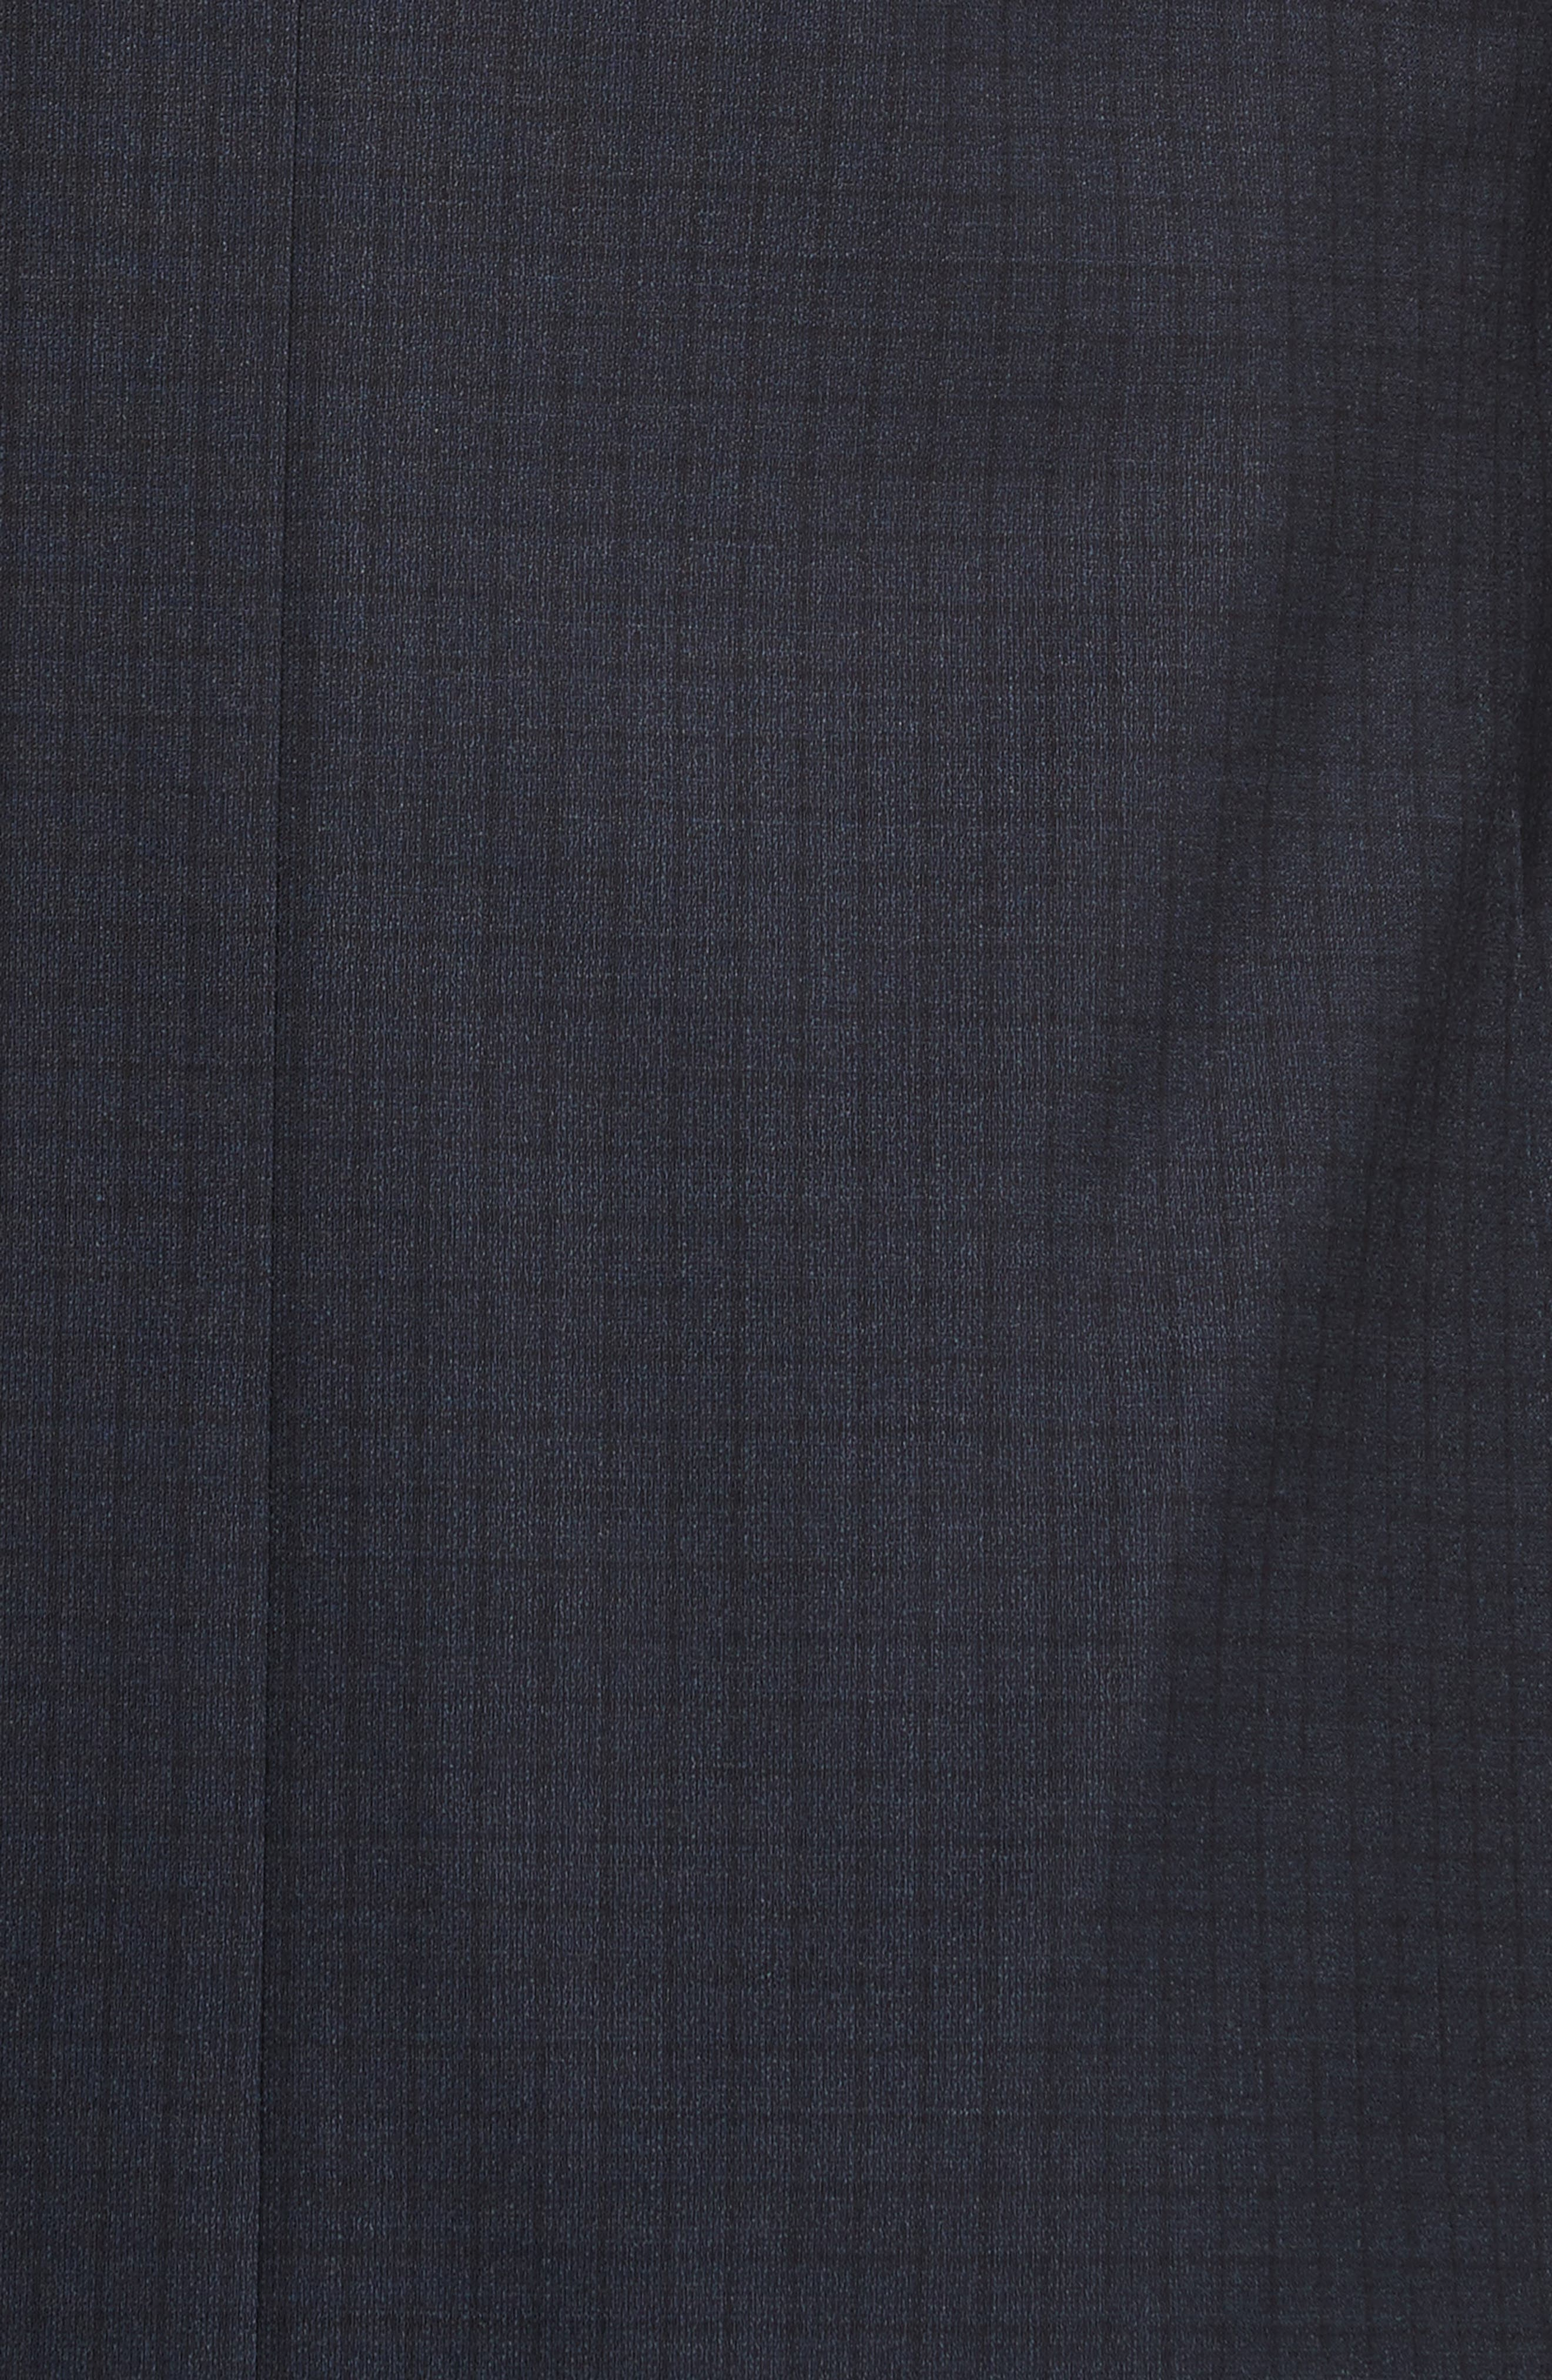 Classic Fit Check Wool Suit,                             Alternate thumbnail 7, color,                             Navy